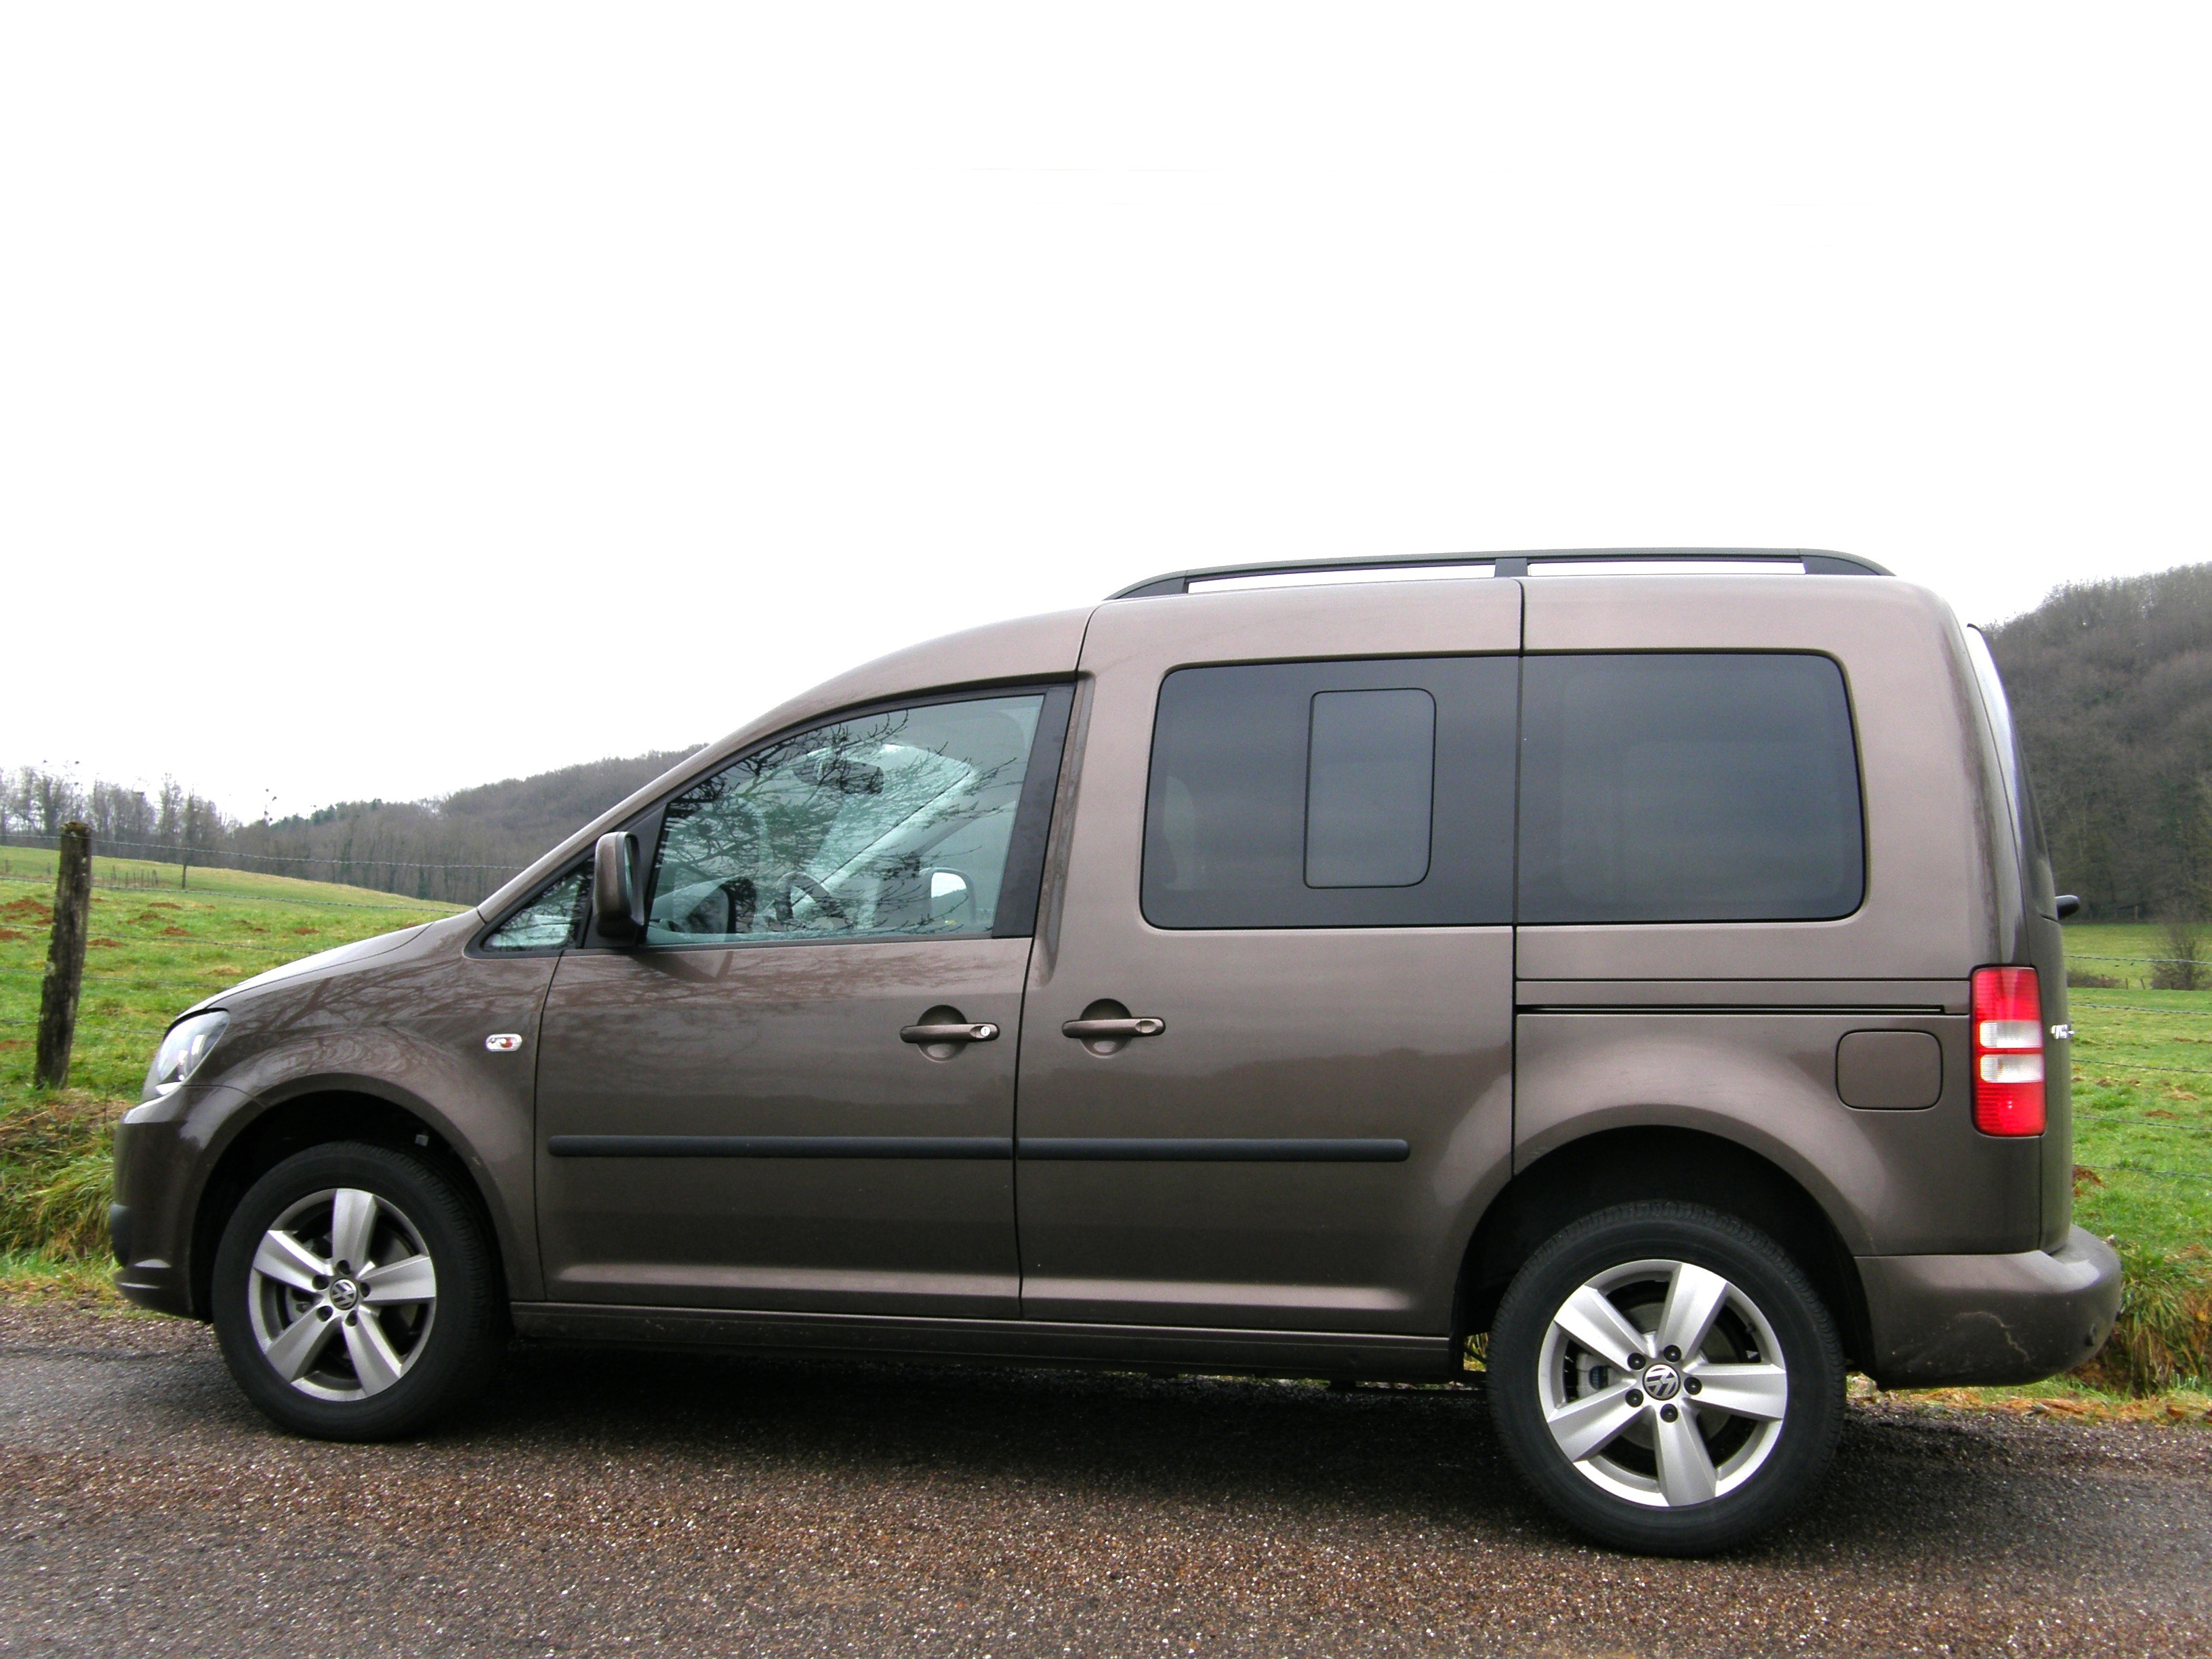 essai volkswagen caddy 1 6 cr tdi 102 bluemotion enfin dans le rang. Black Bedroom Furniture Sets. Home Design Ideas